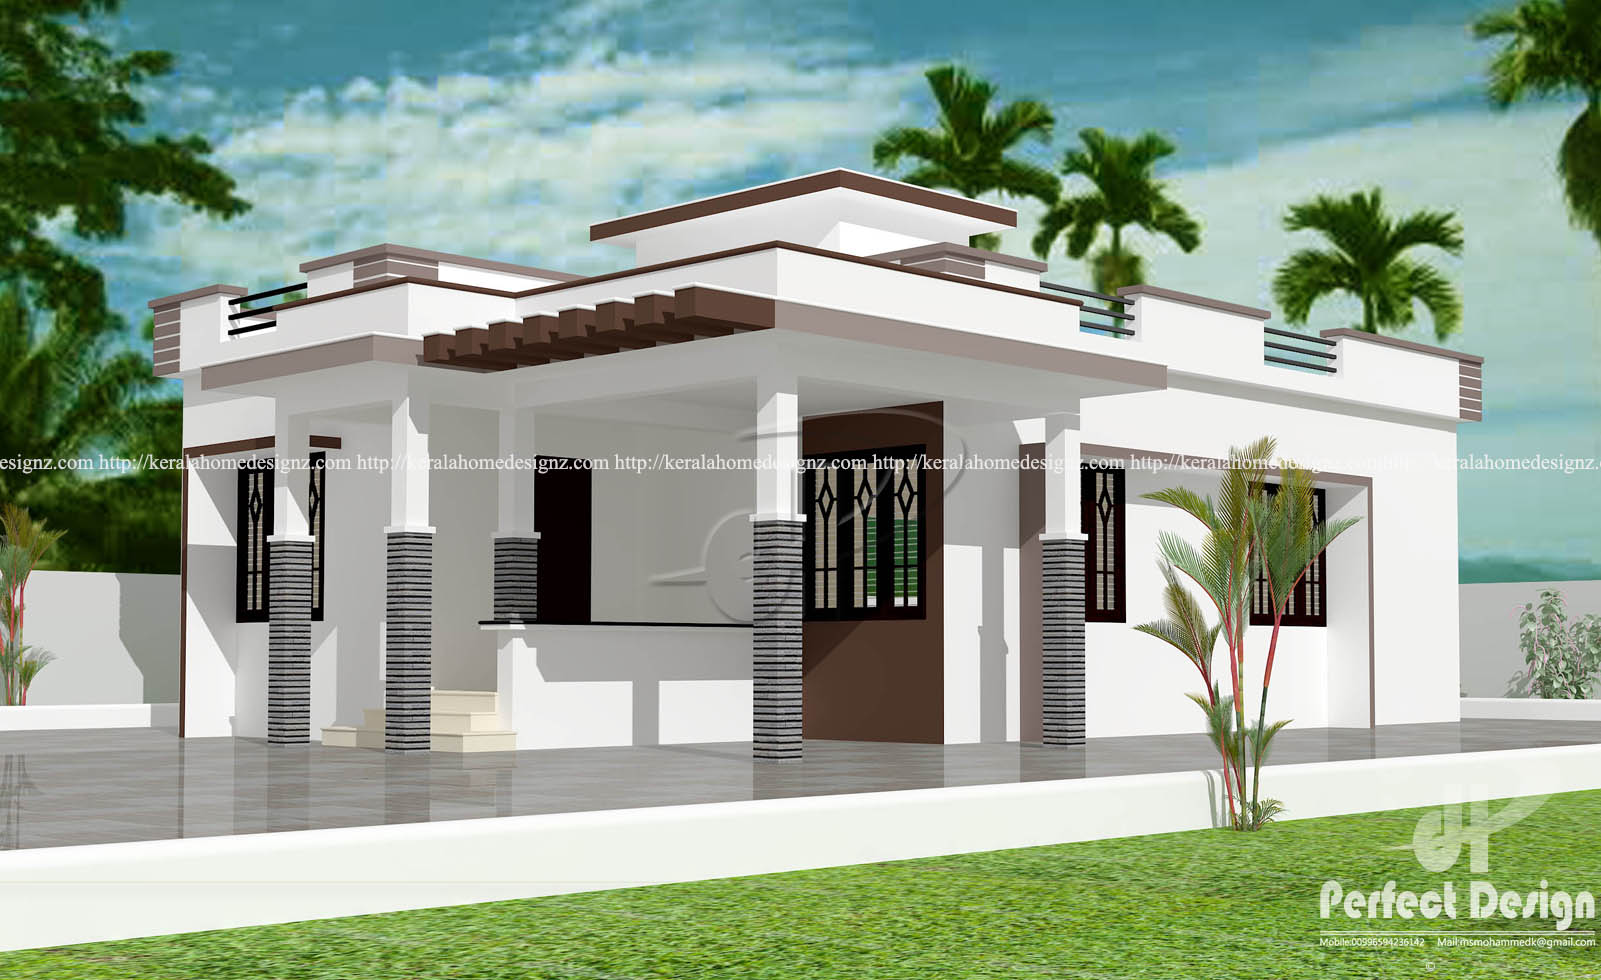 12 Lakhs Cost Estimated Modern Home Kerala Home Design